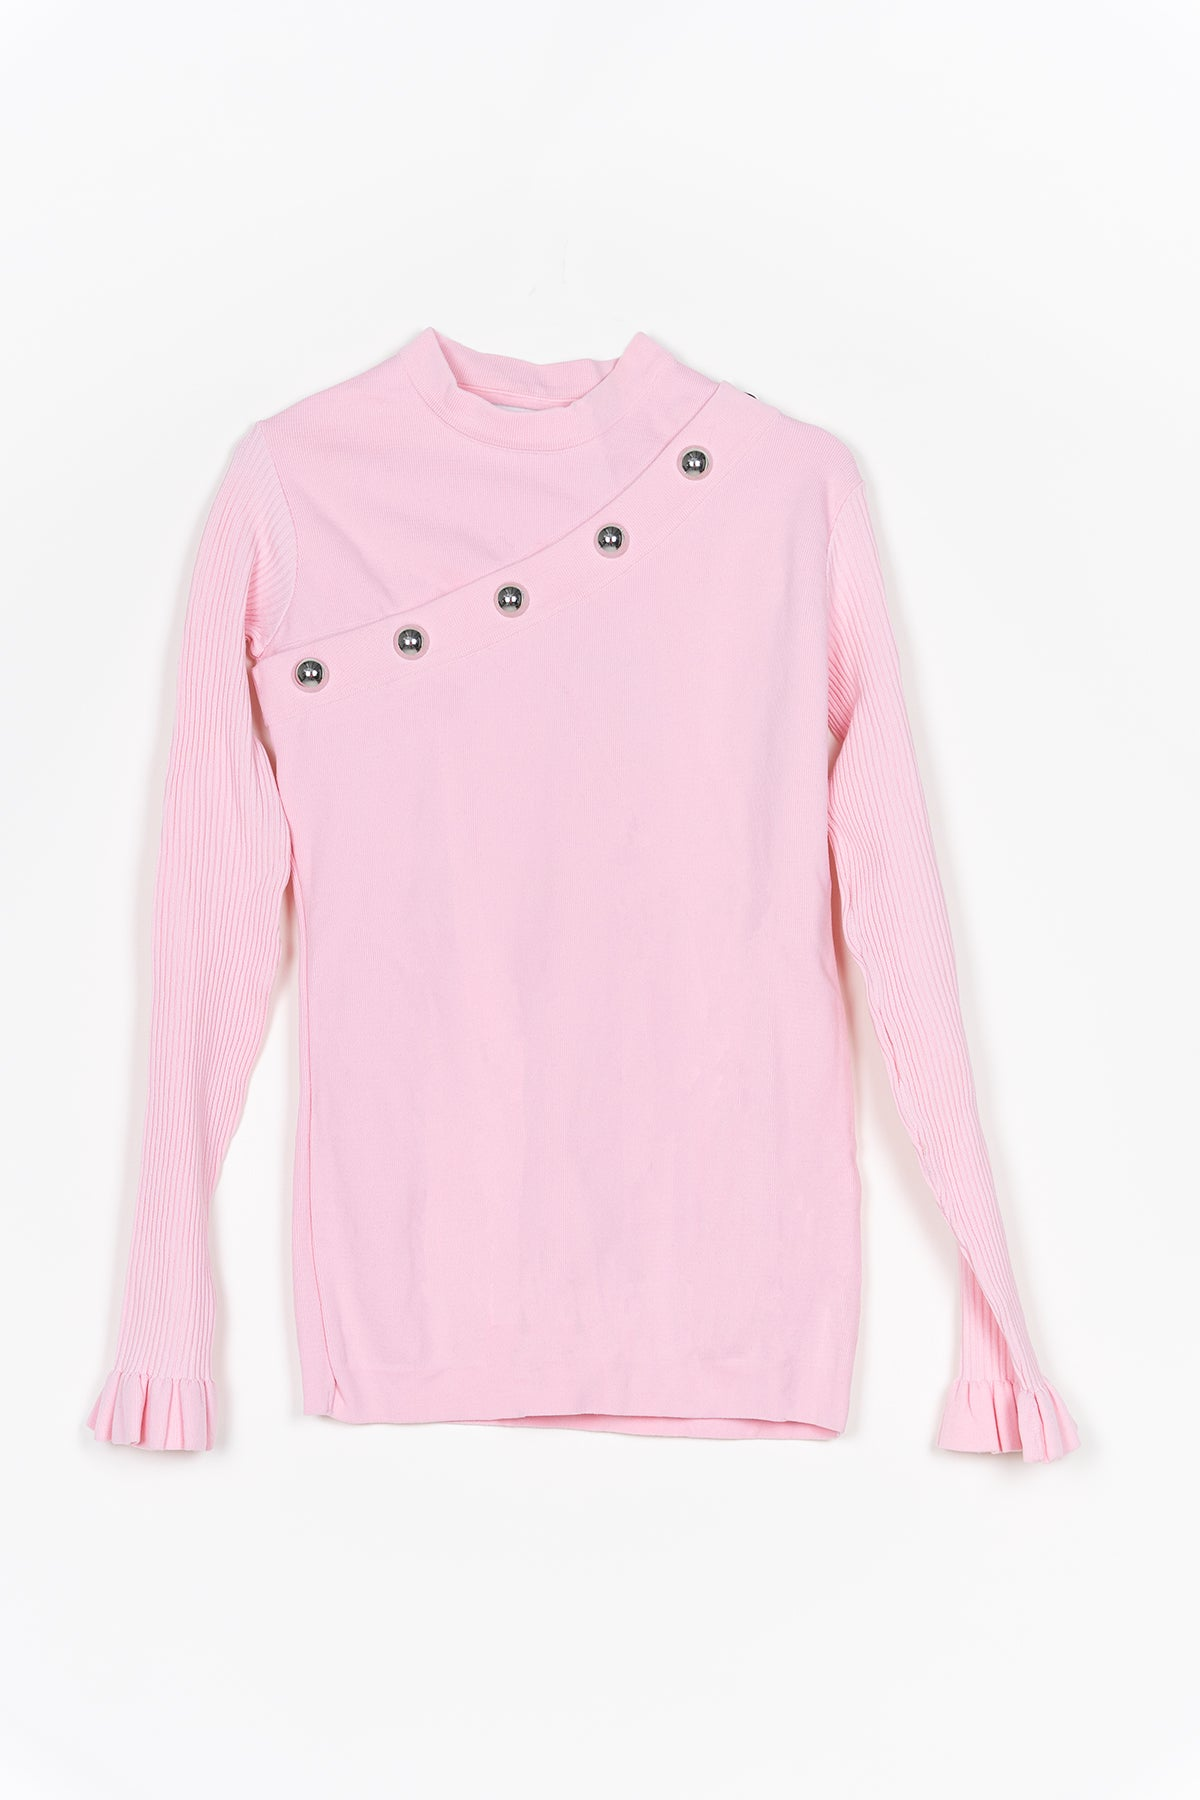 PINK SNAP JUMPER